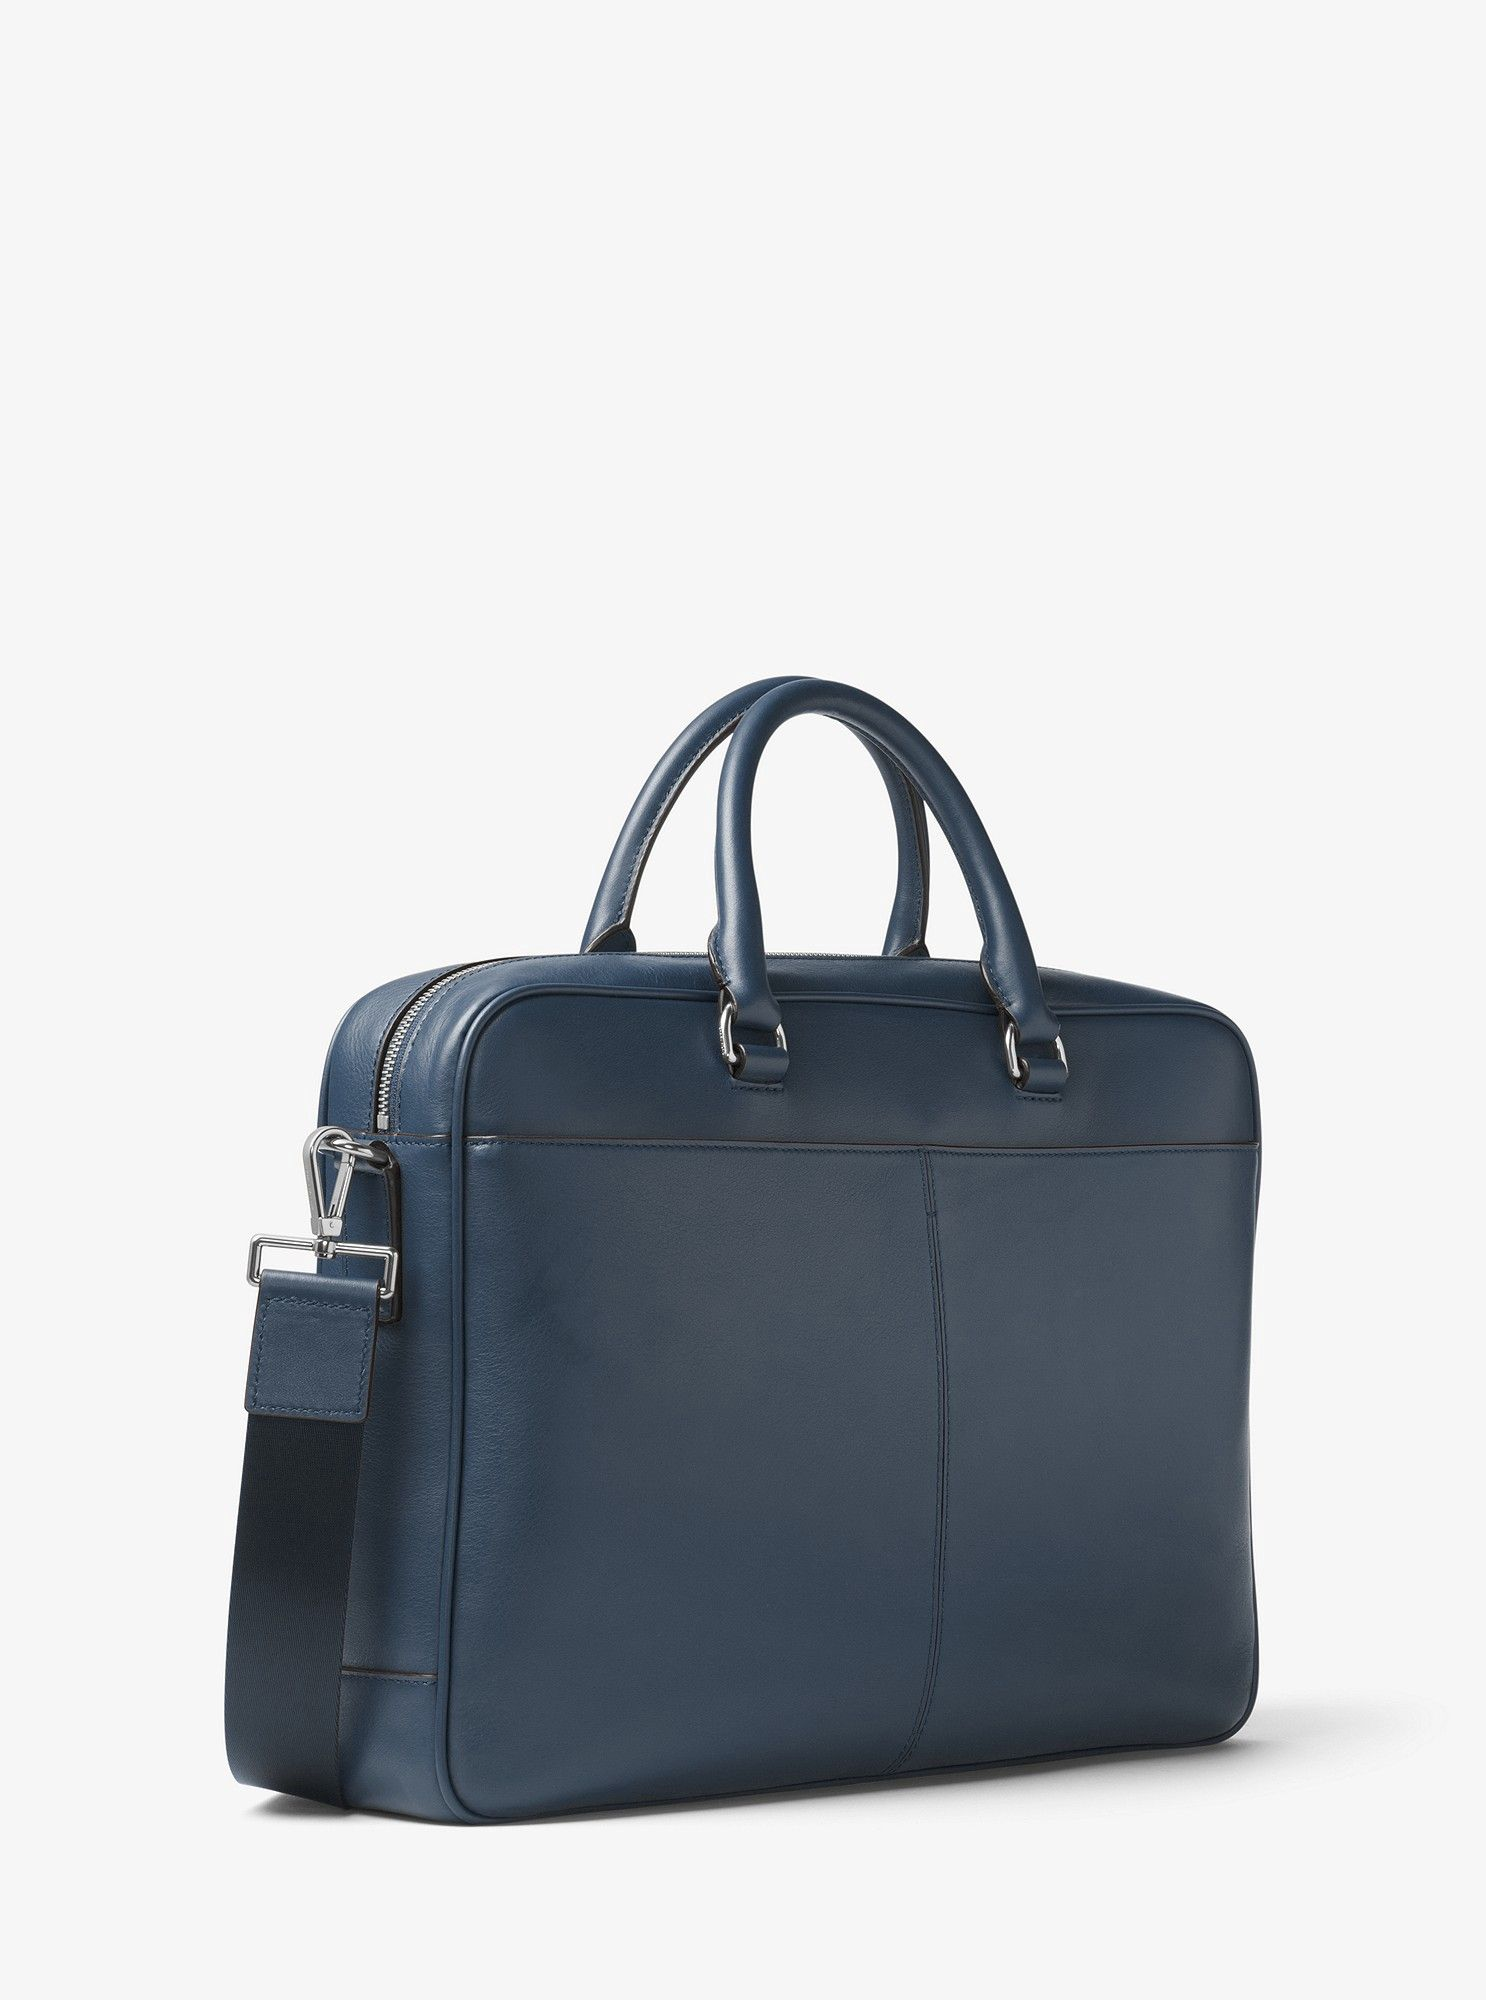 8e1327b41f82 Michael Kors Odin Large Leather Briefcase - Baltic Blue | Mens ...